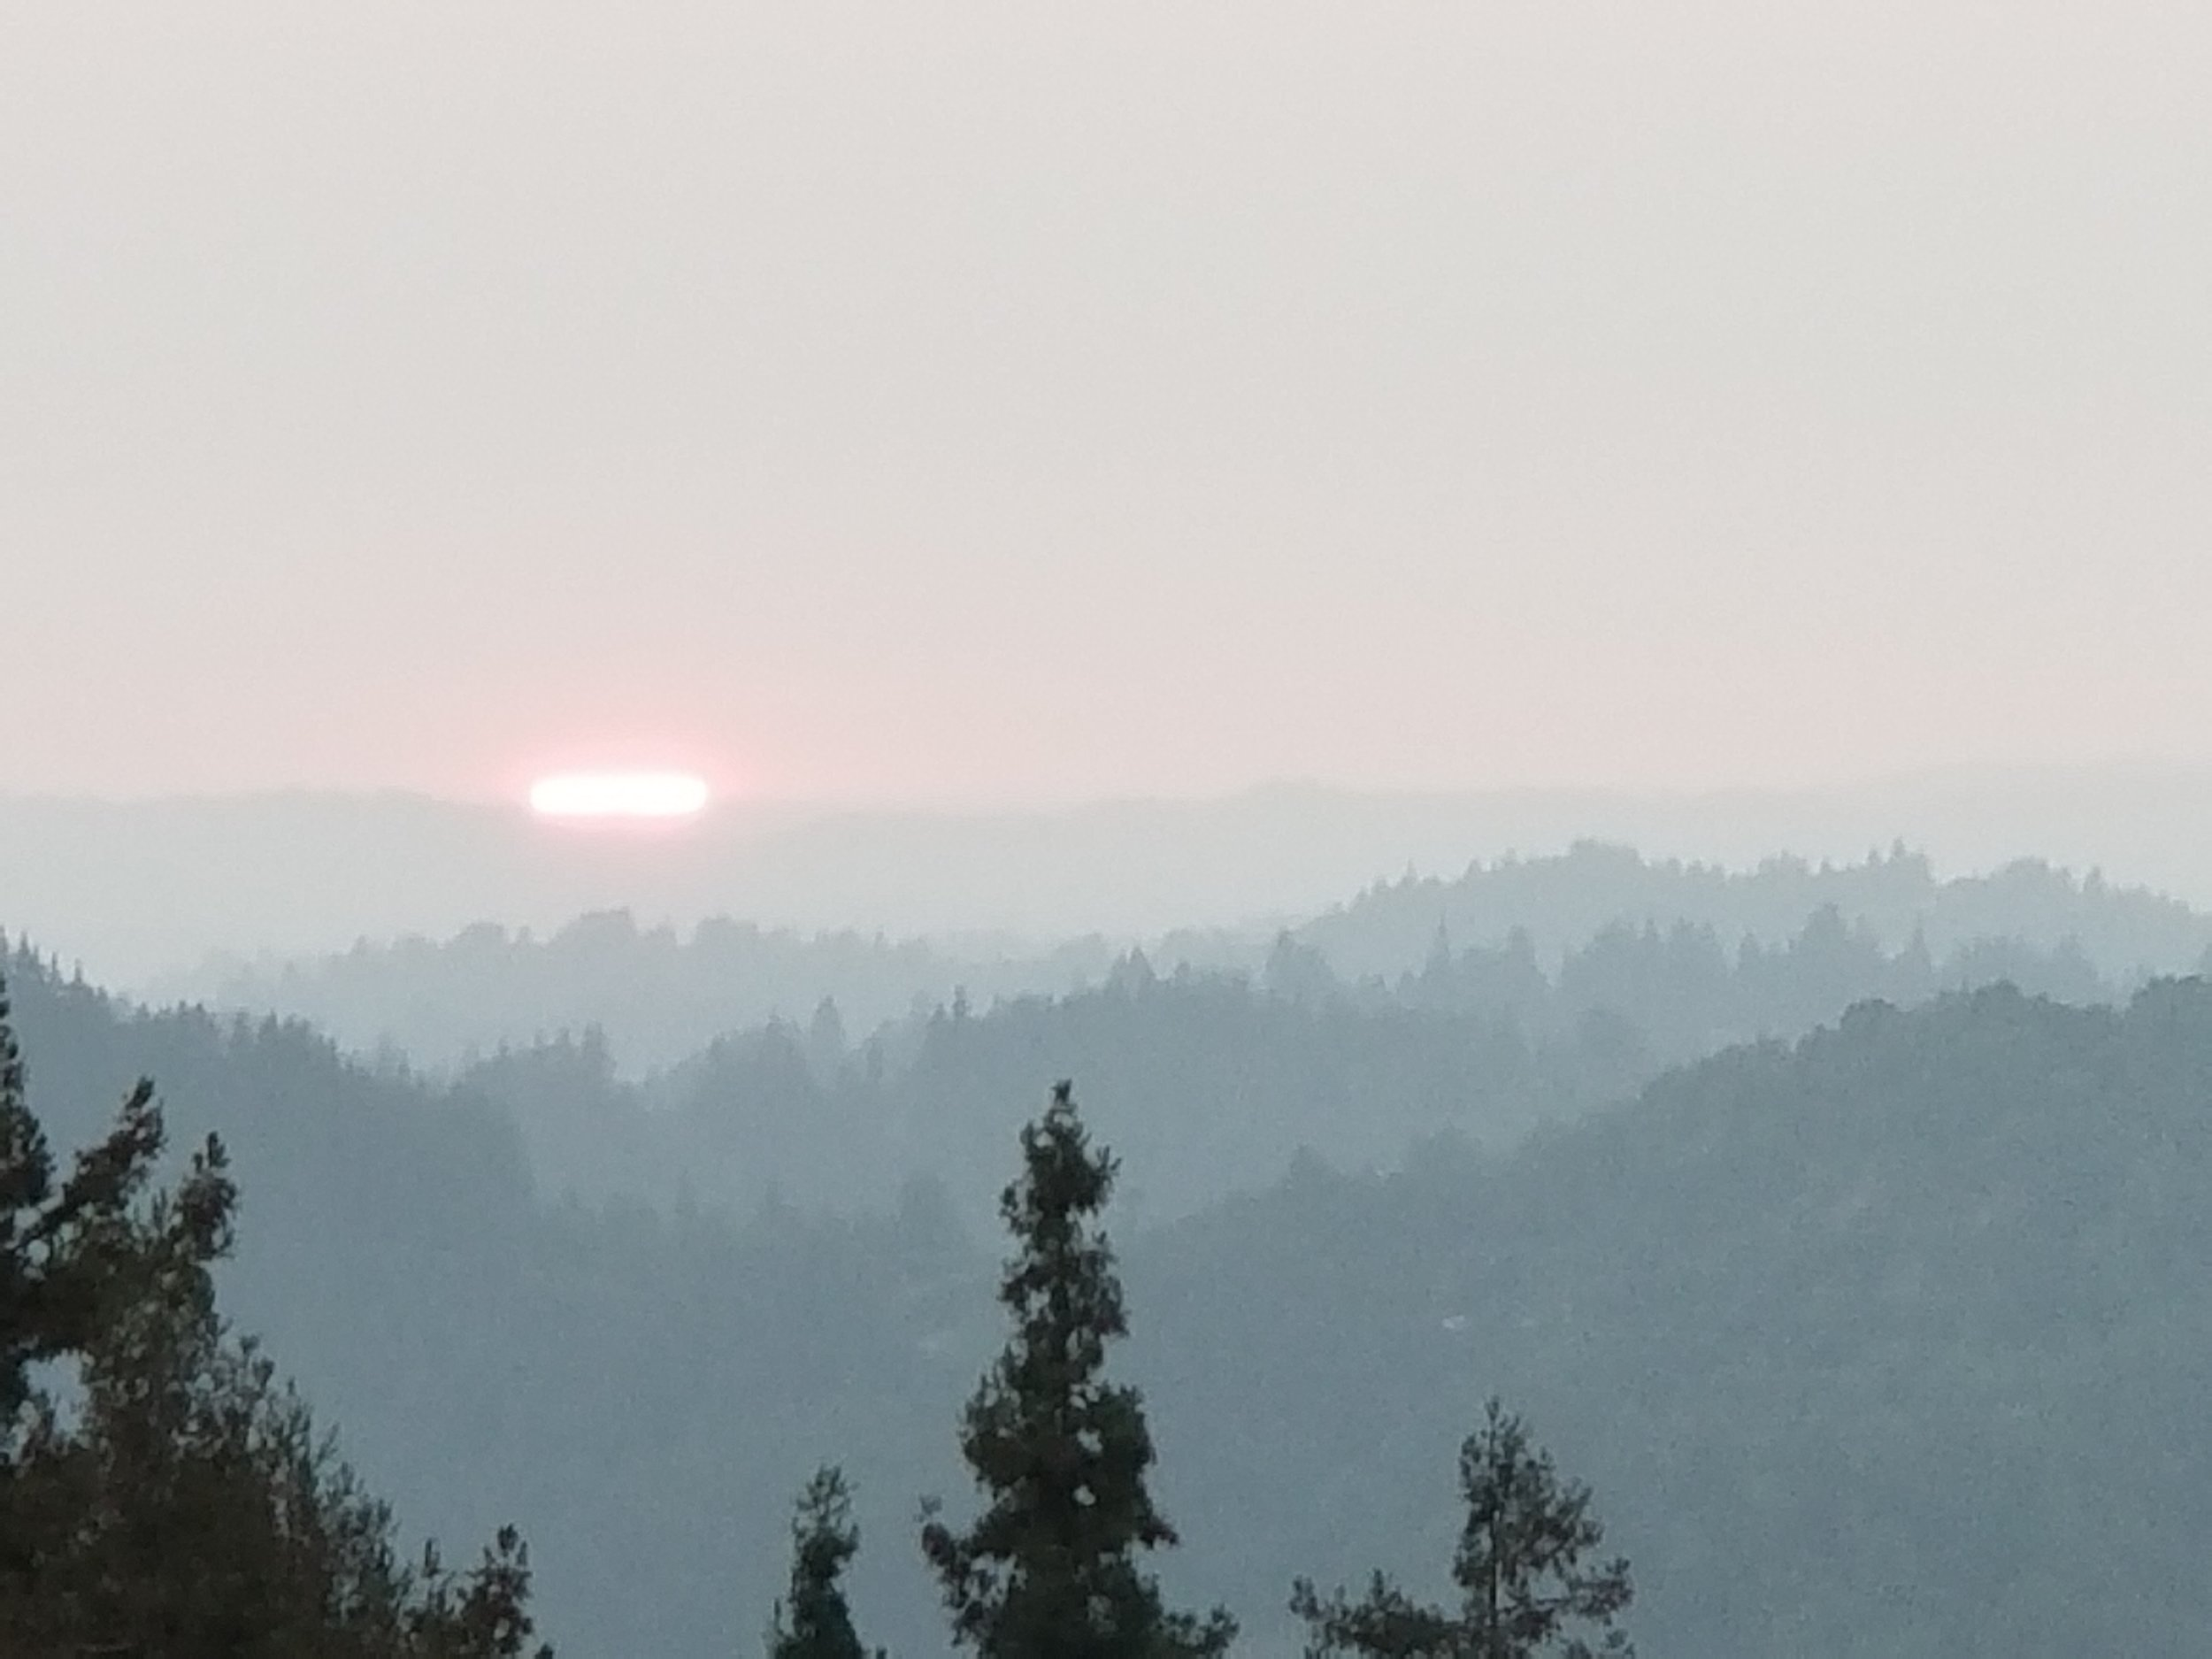 Smokey haze from Mendacino fires hundreds of miles North of us. We are very conscious of fire safety at Cliff House.